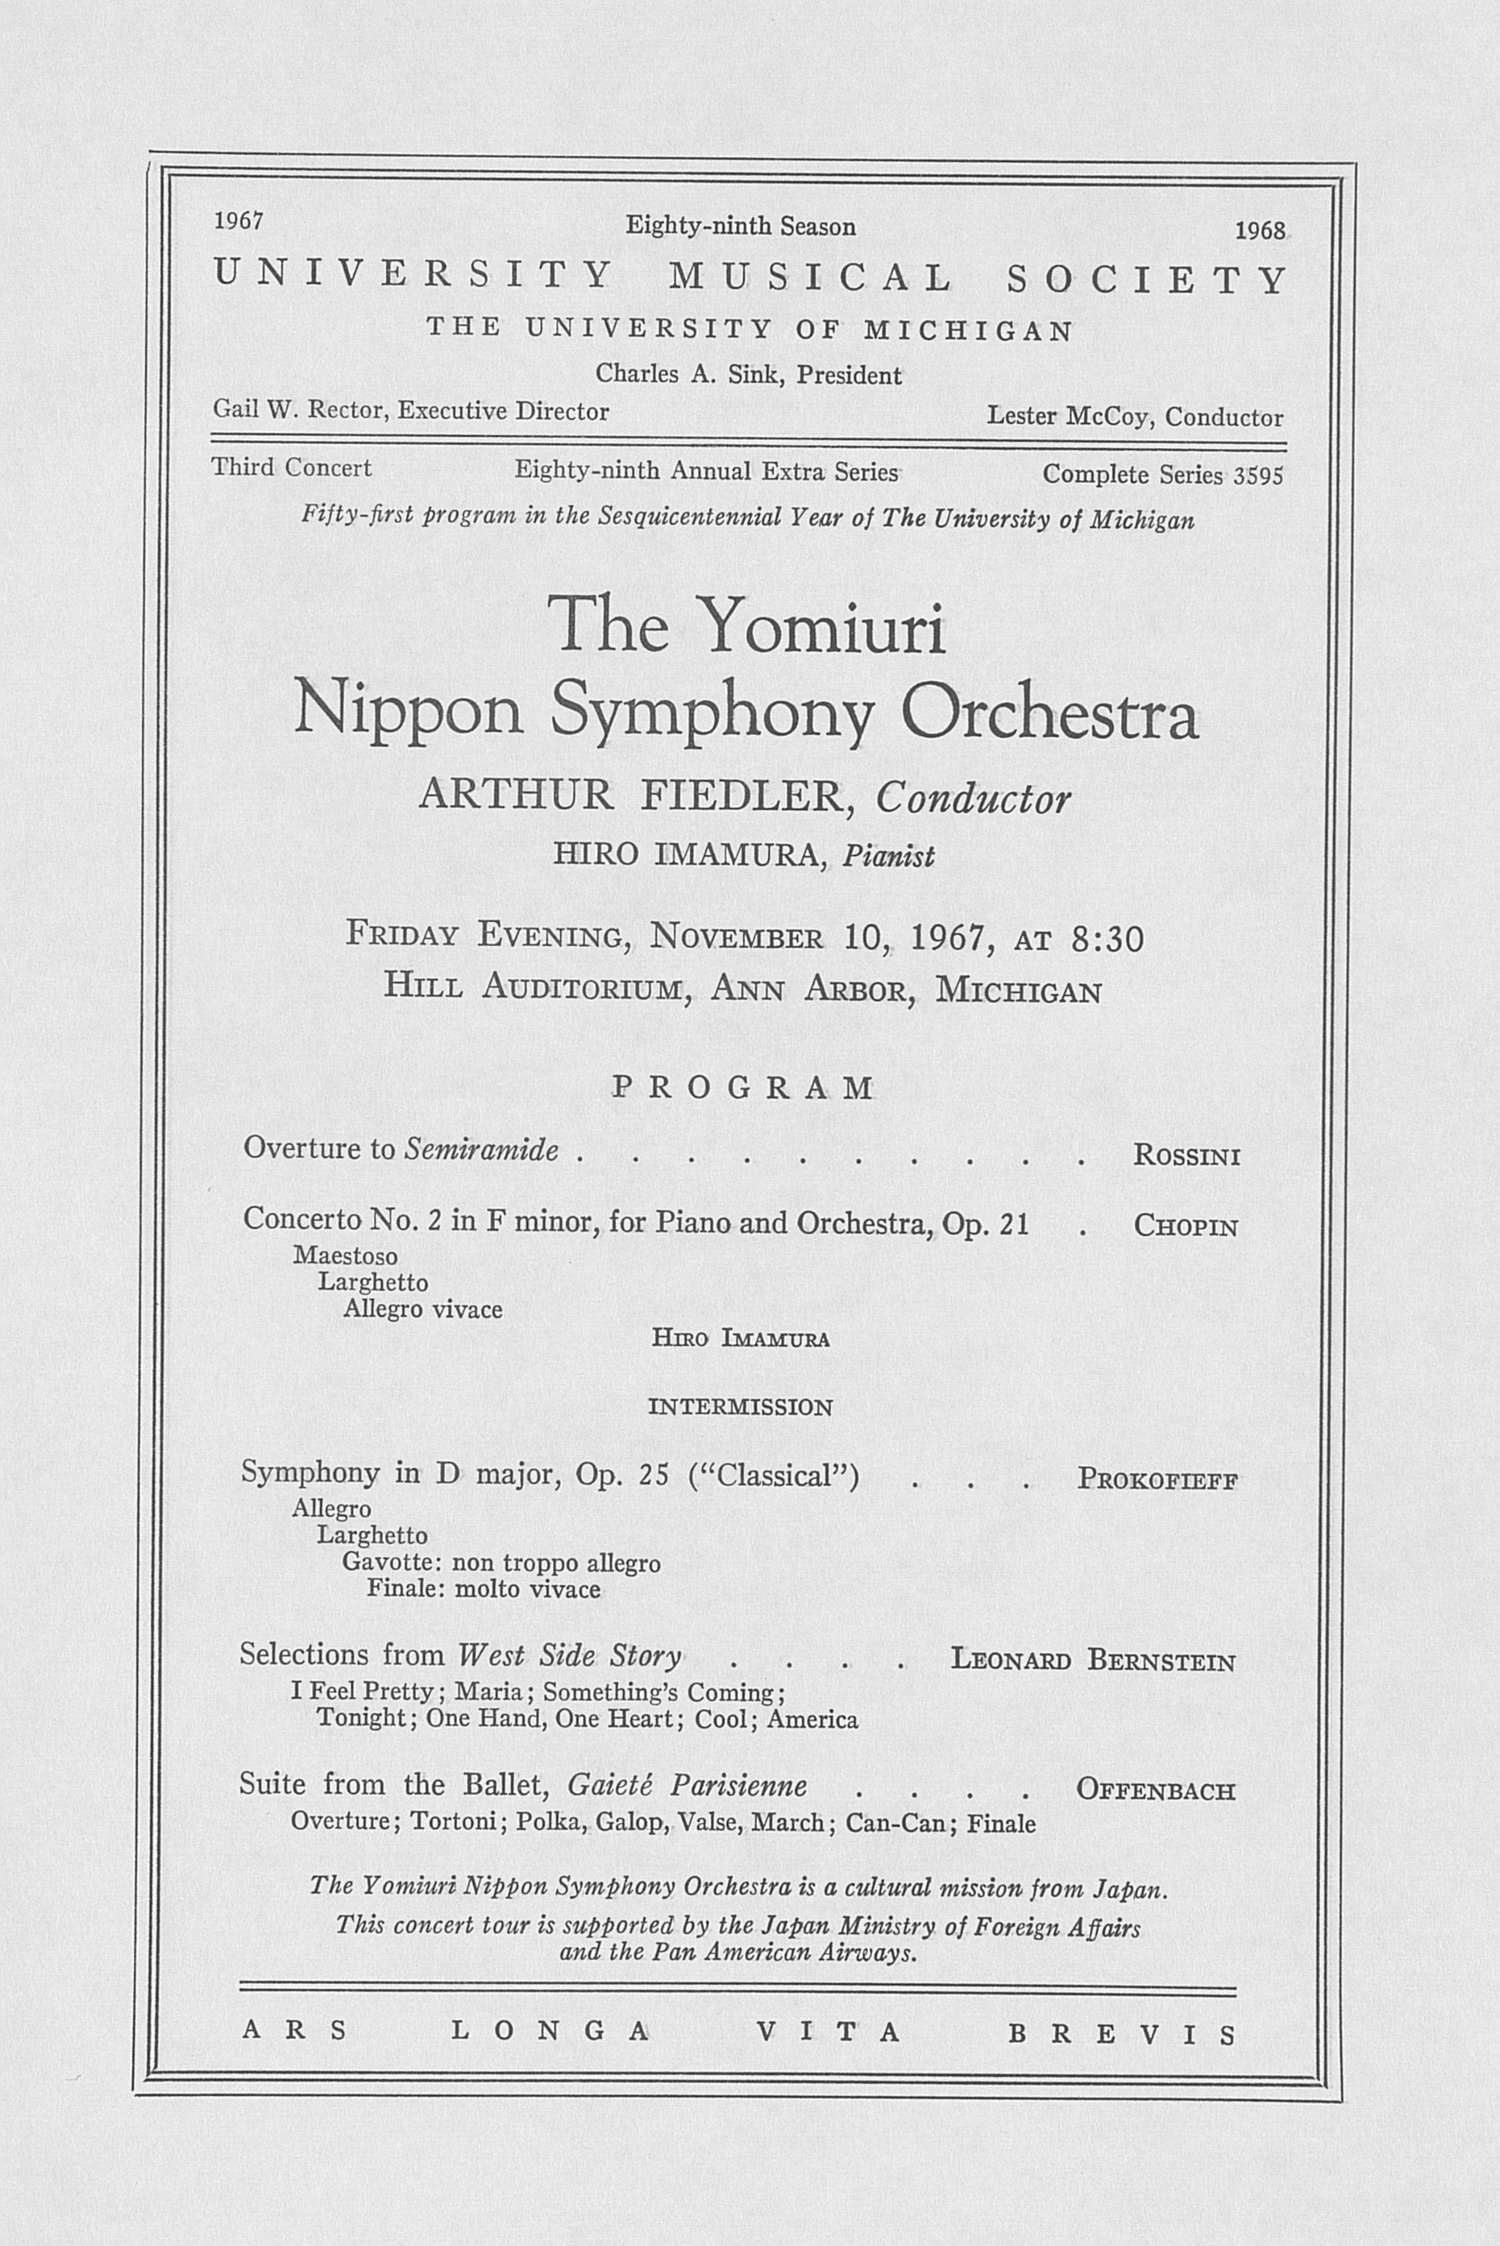 UMS Concert Program, November 10, 1967: The Yomiuri Nippon Symphony Orchestra --  image